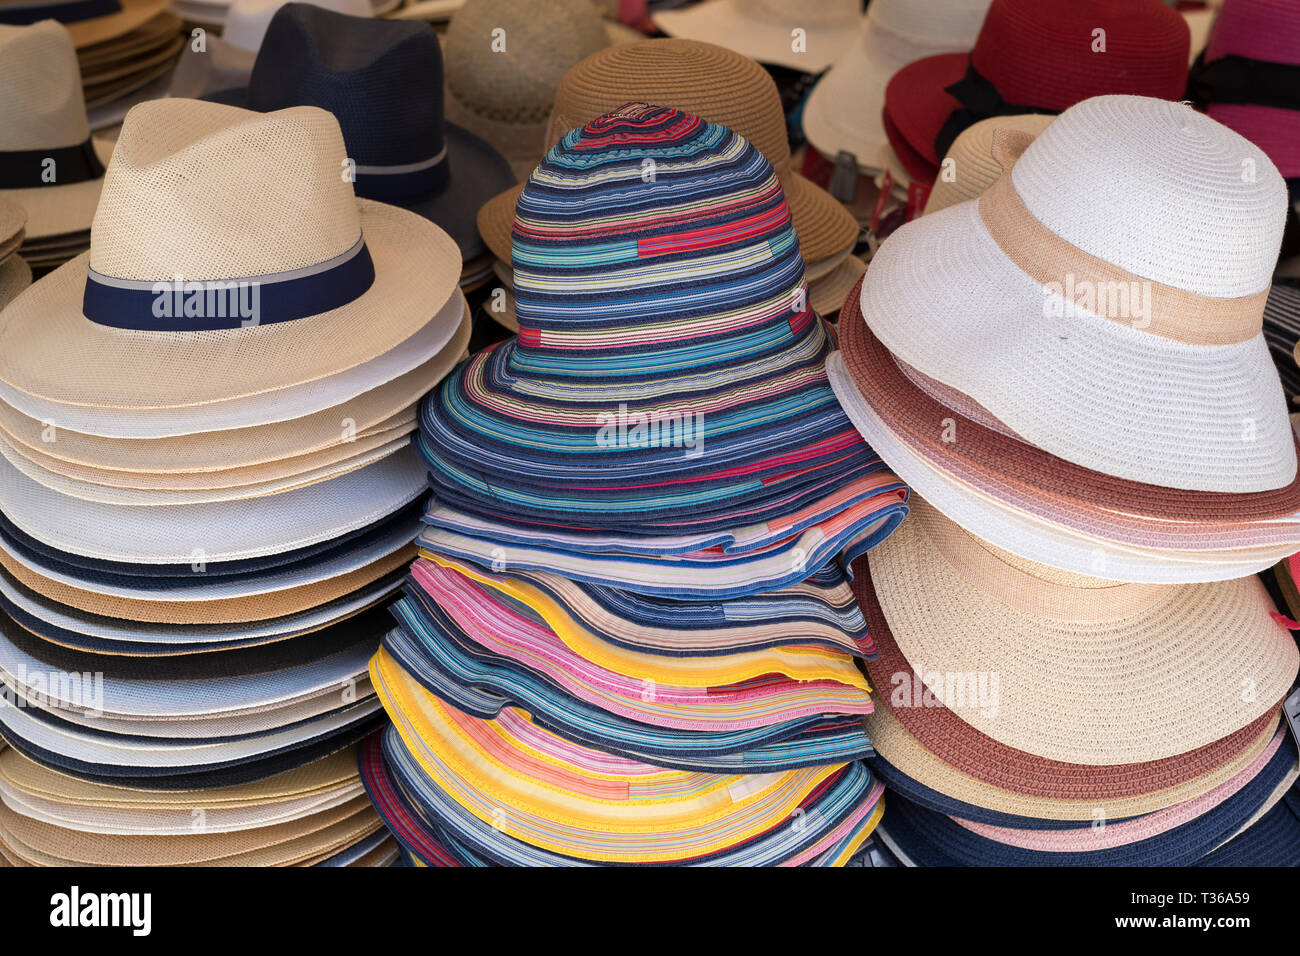 b08009af8ddc34 Panama and straw sun hats on display for sale on market stall at the old  street market - Mercado - in Ortigia, Syracuse, Sicily